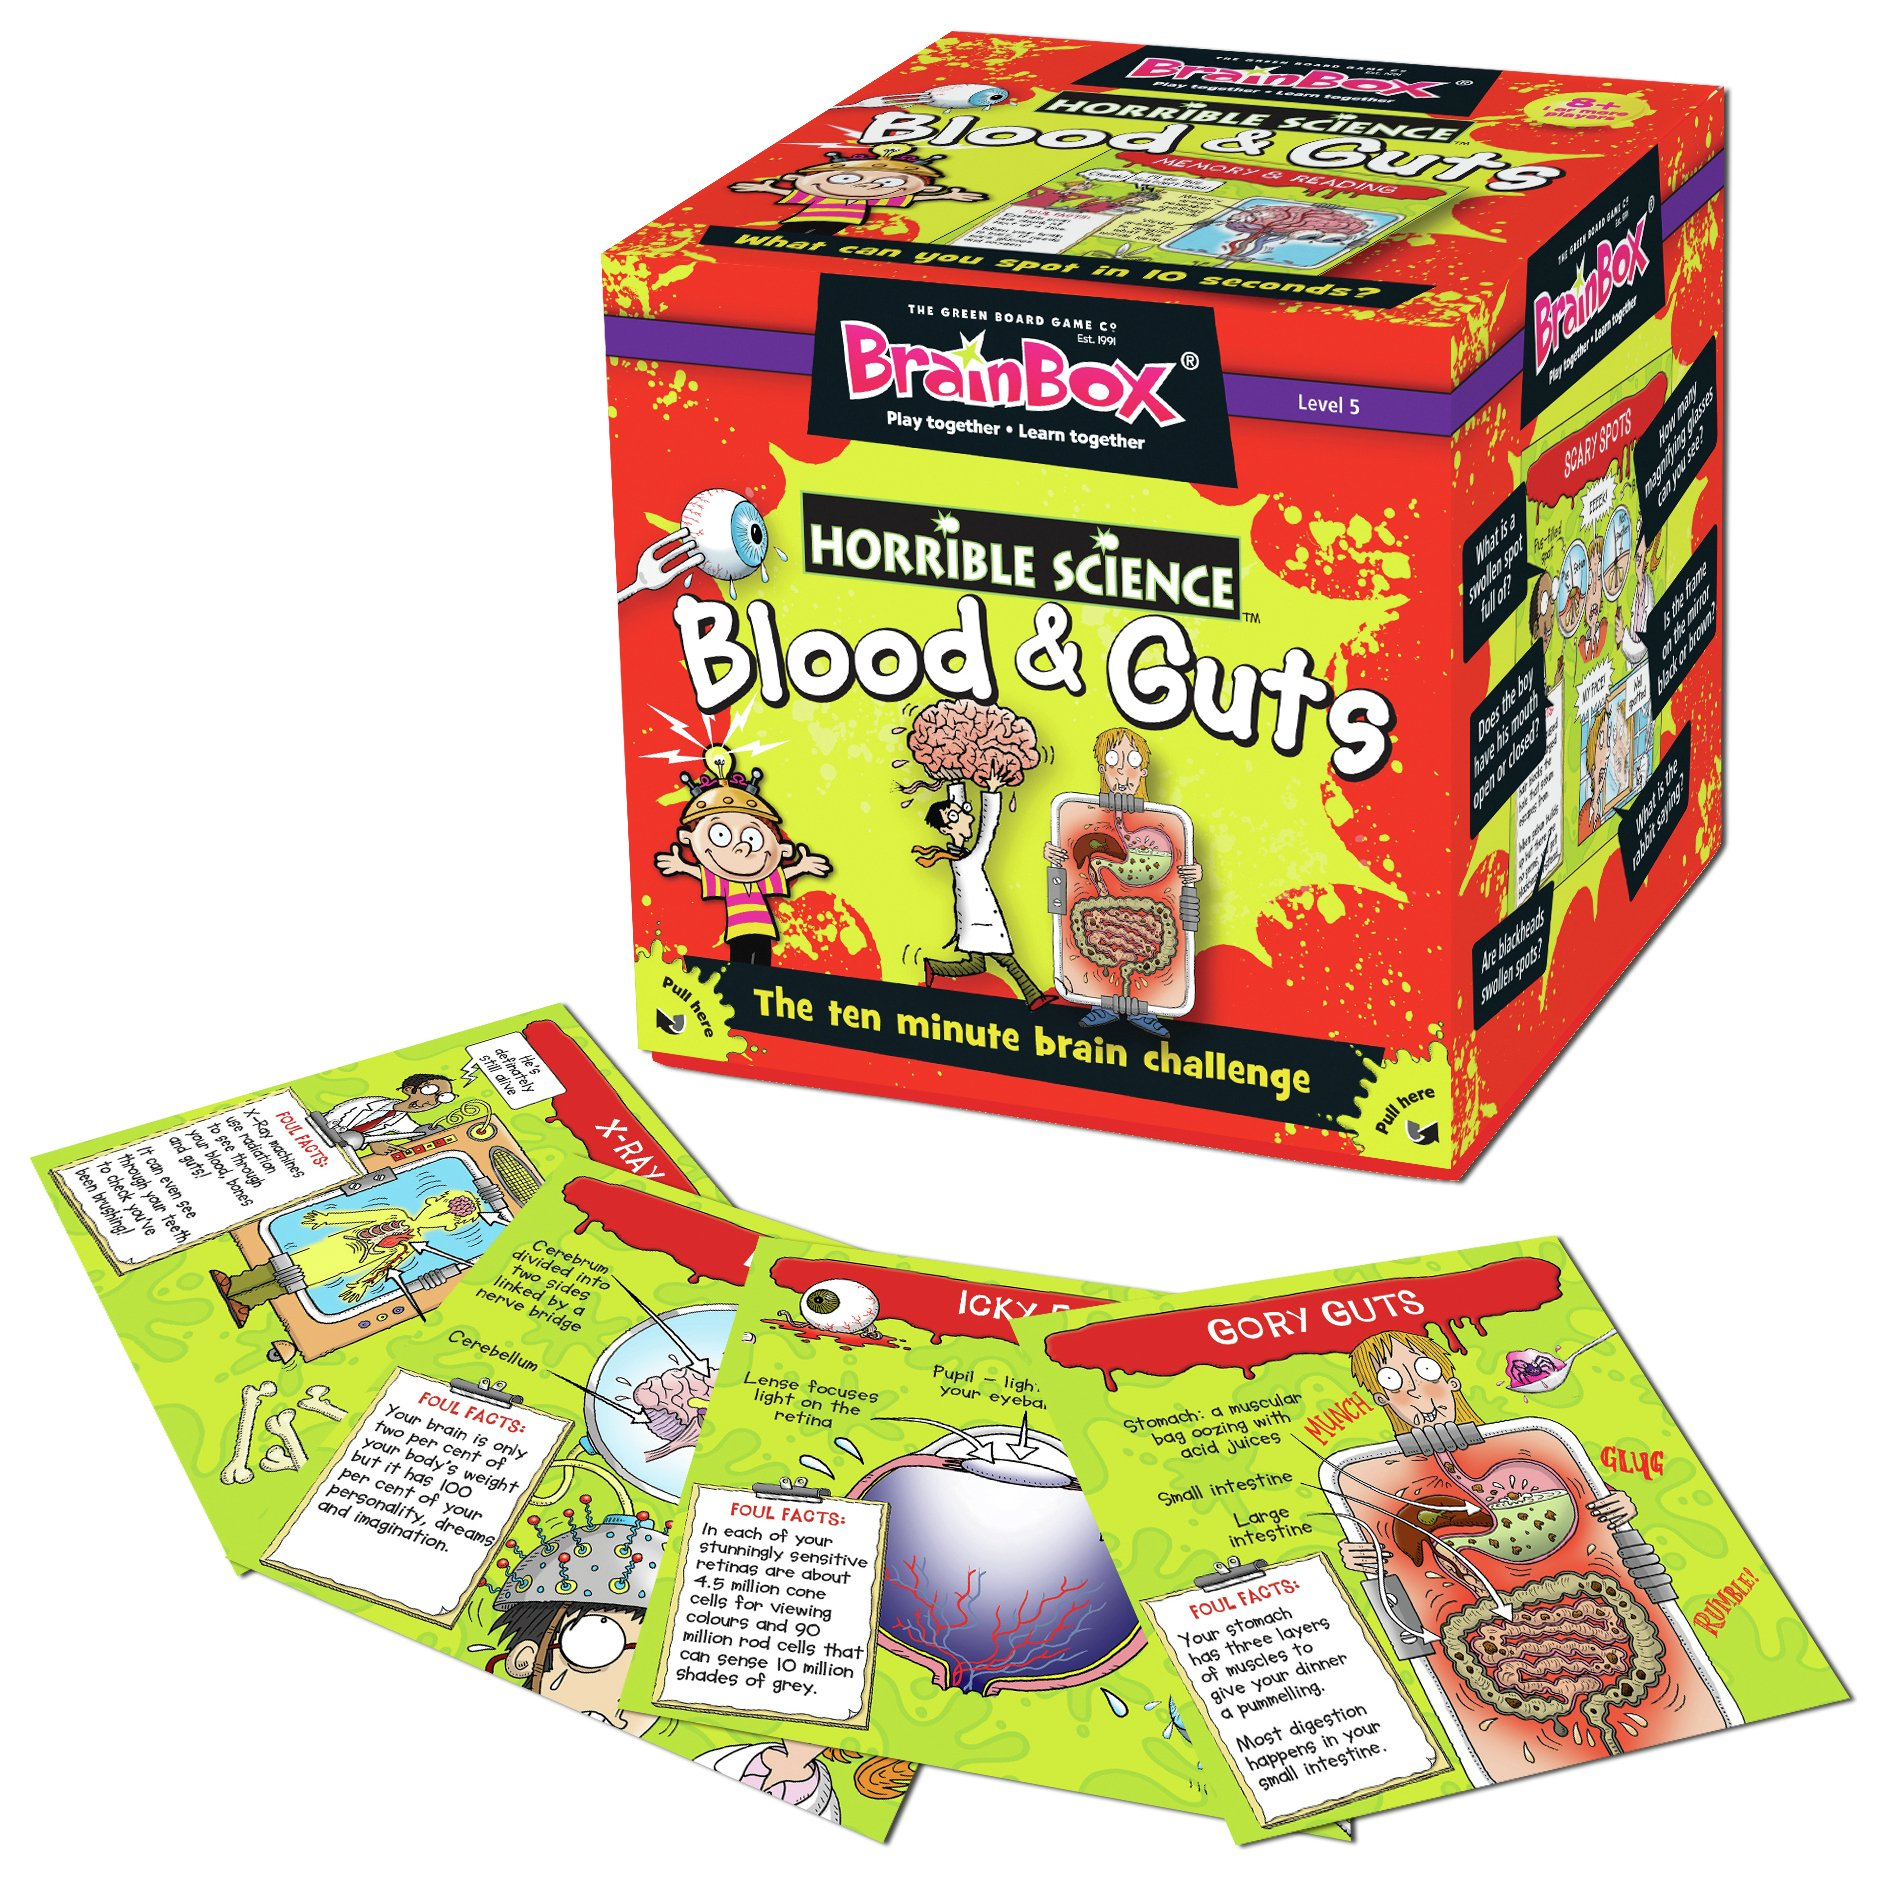 Image of BrainBox Blood and Guts Game.